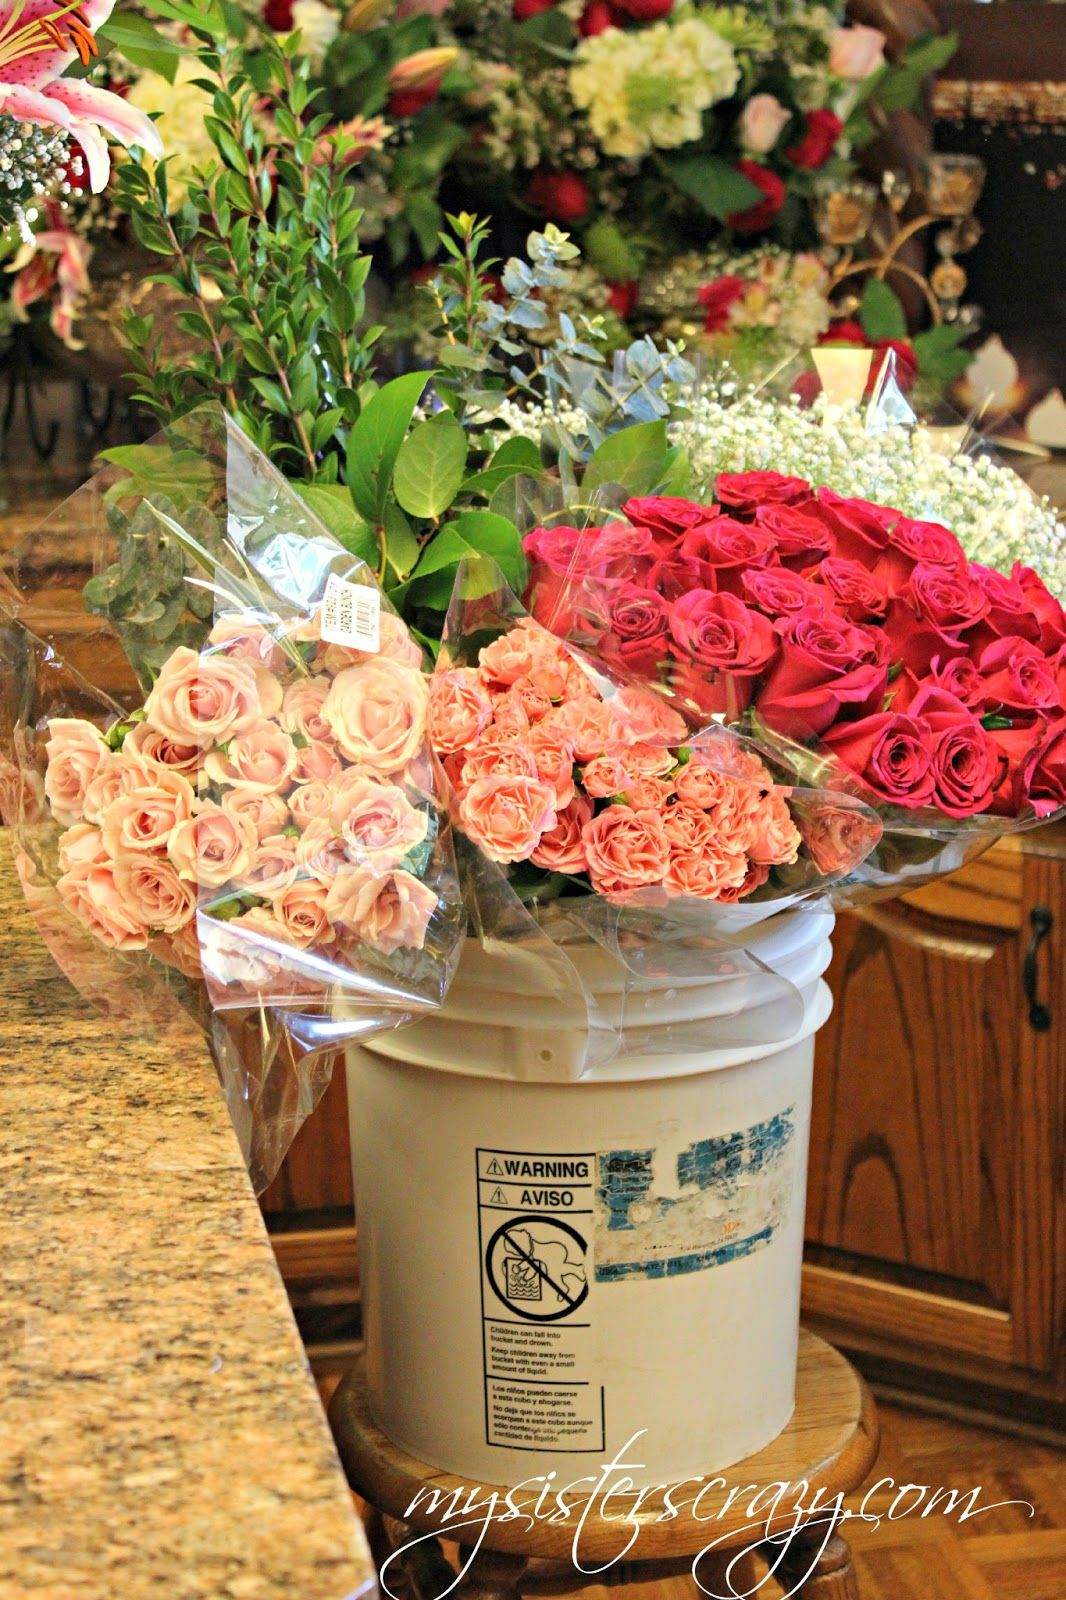 Costco Flowers you can place large orders for weddings showers or